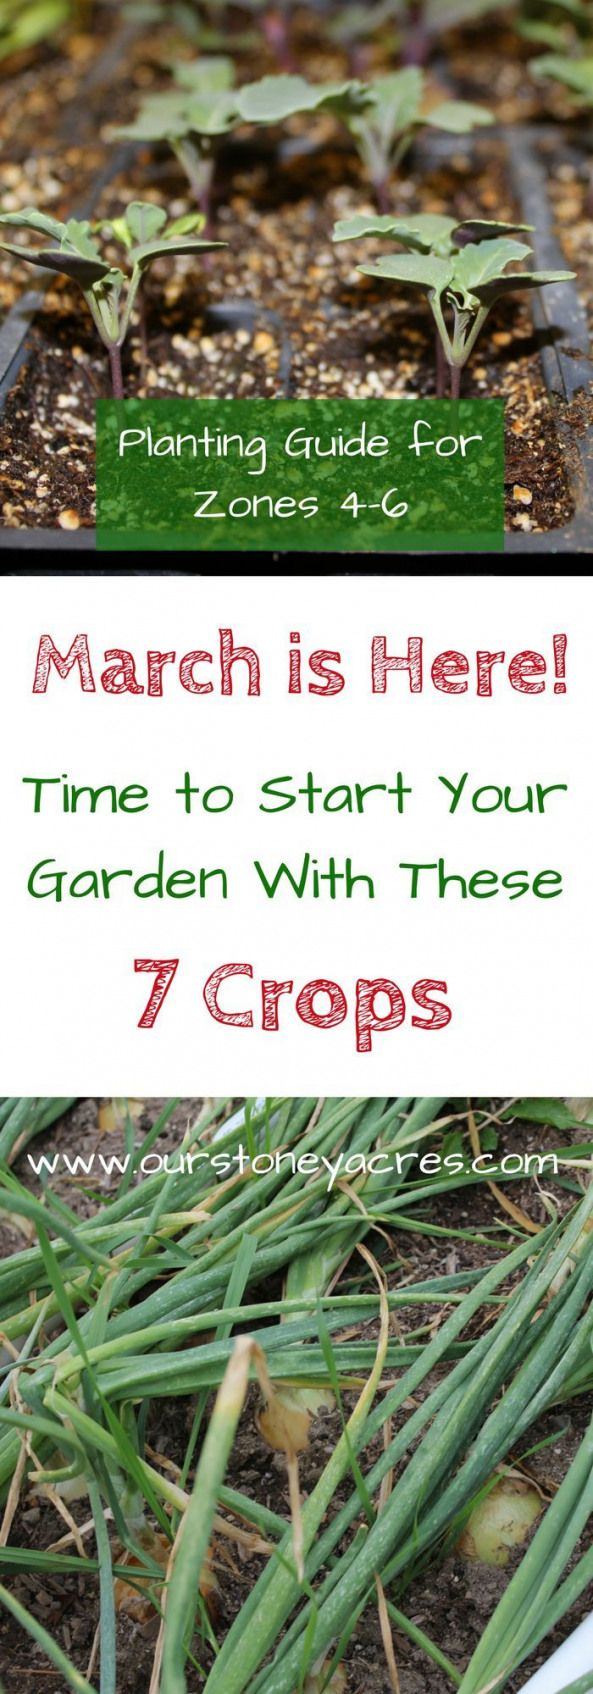 March Planting Guide Zones 4-6.  March has arrived in your garden! This March Planting Guide will give those of you that live in Zones 4-6 a good idea of what seeds can be planted directly in the garden and what seedlings you need to be planting indoors during the month of March! #gardentypes #garden #types